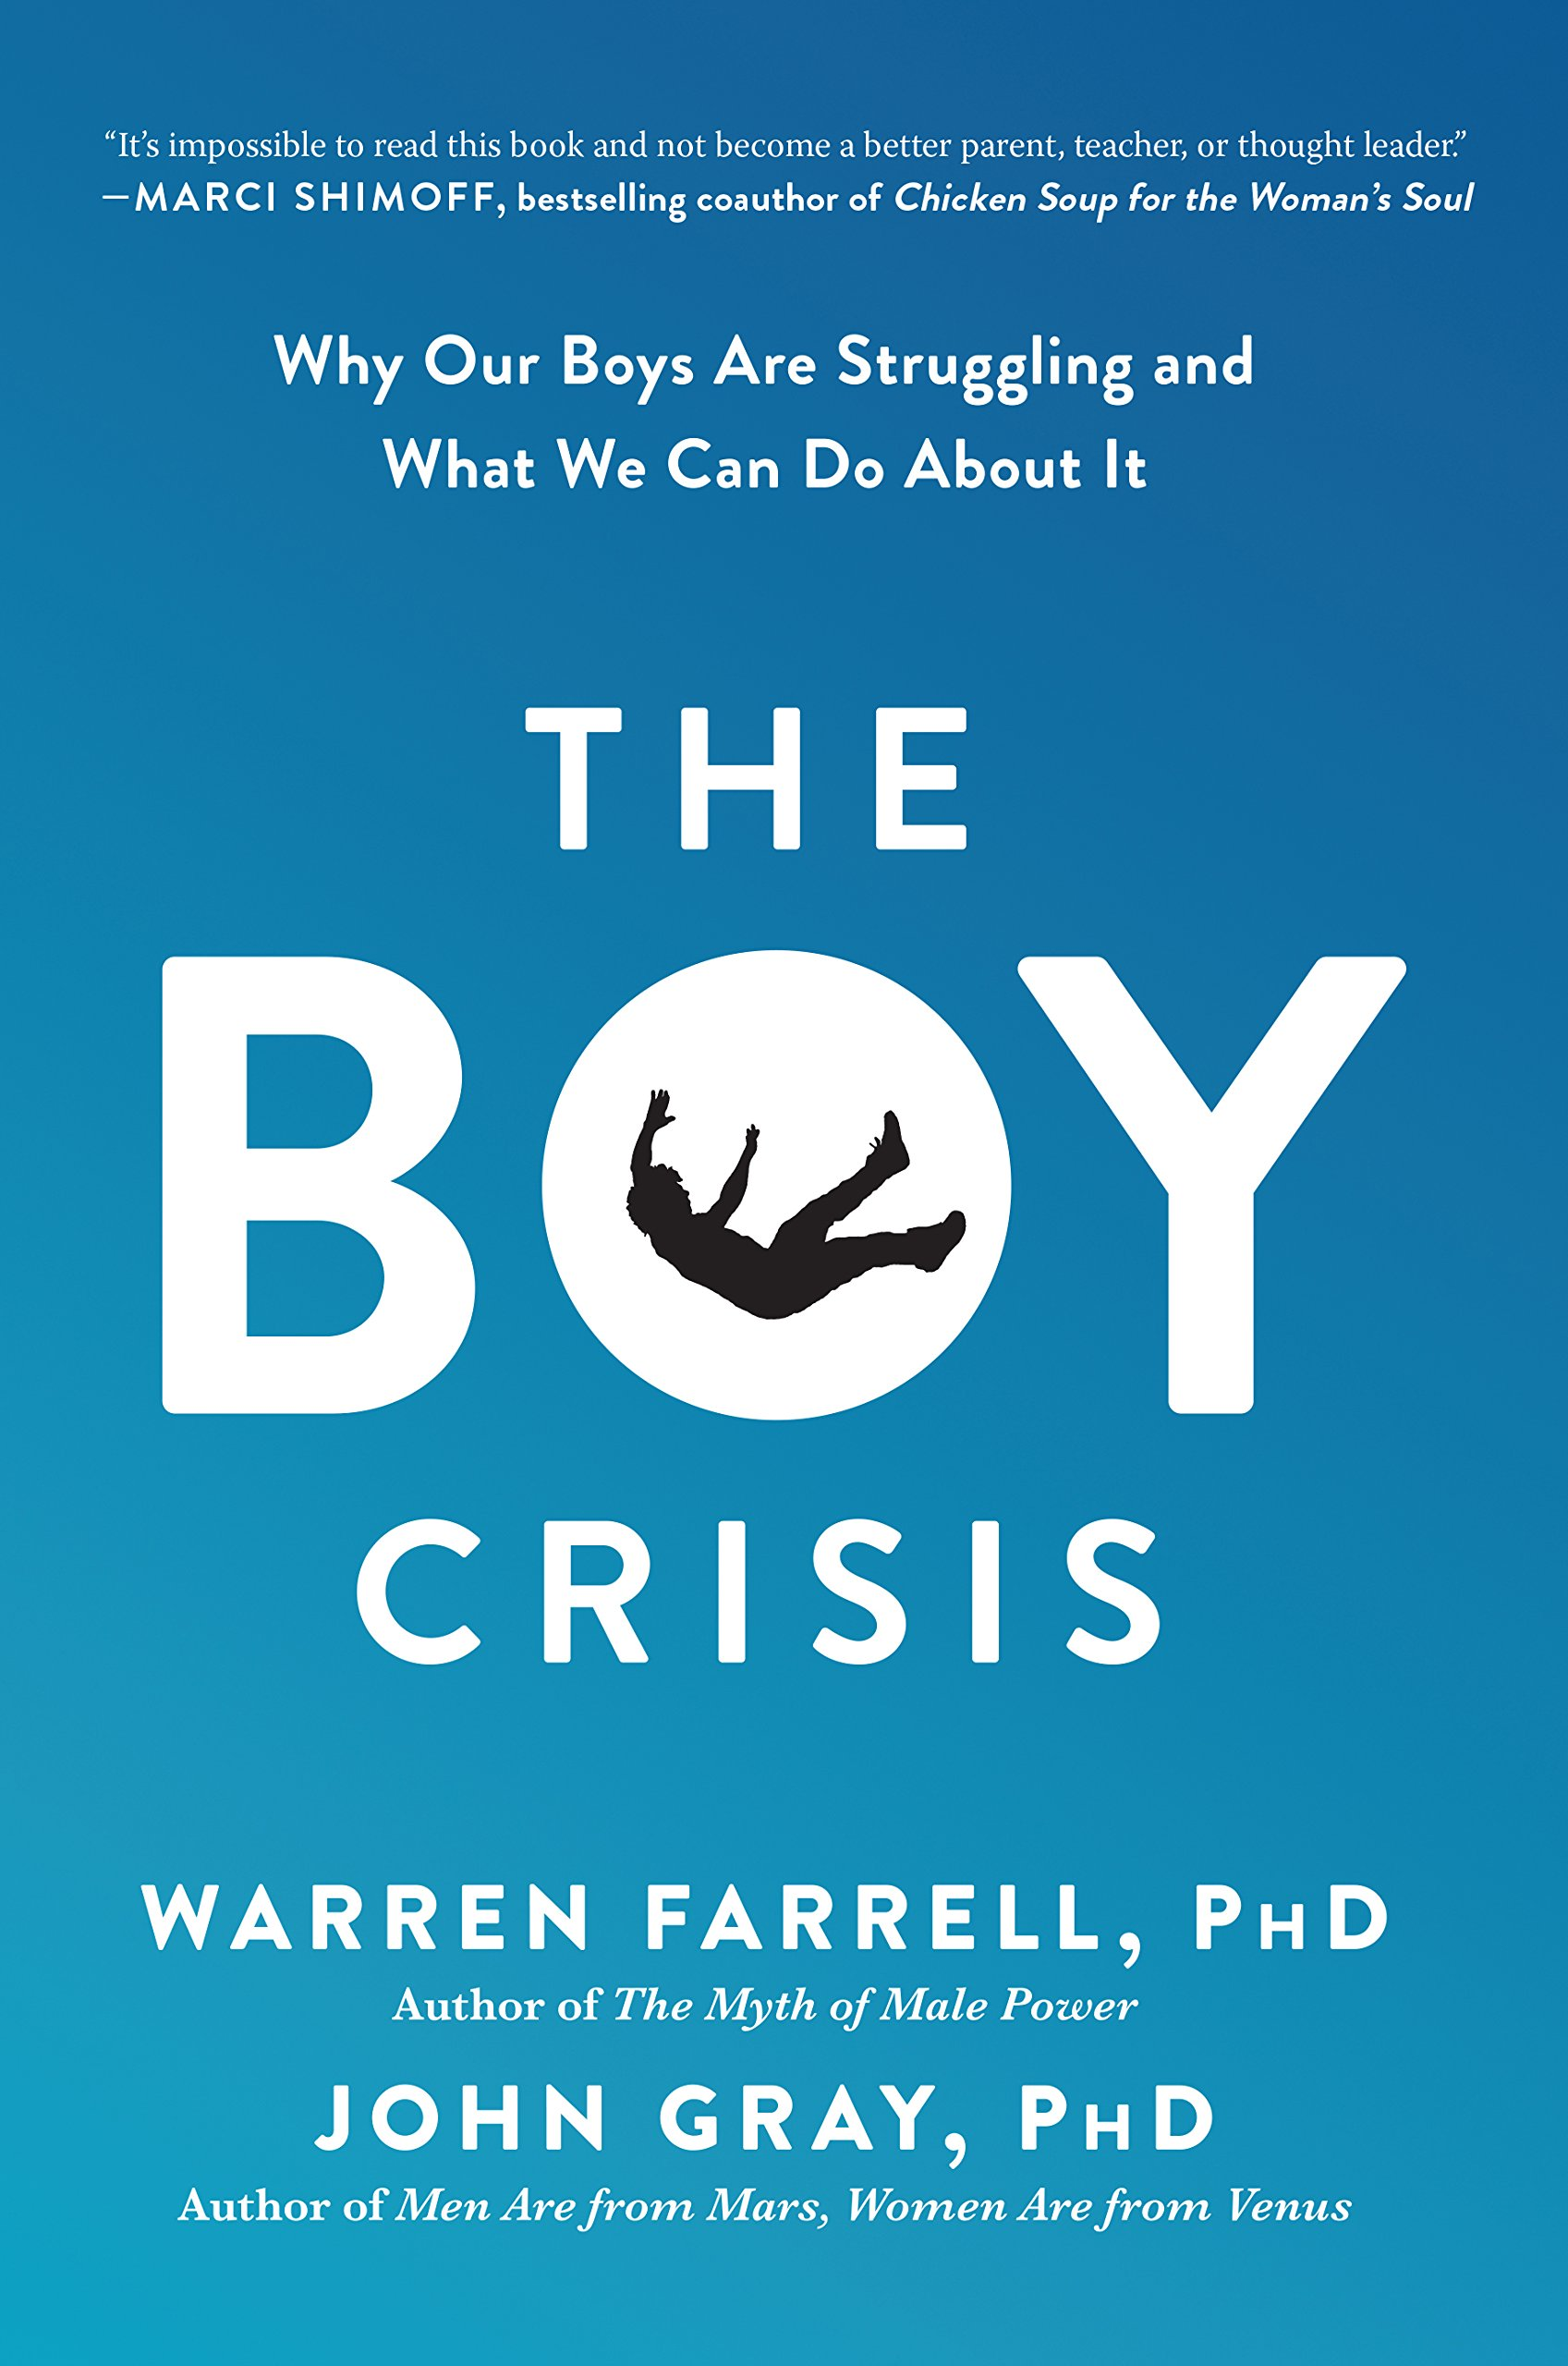 the-boy-crisis_cover.jpg